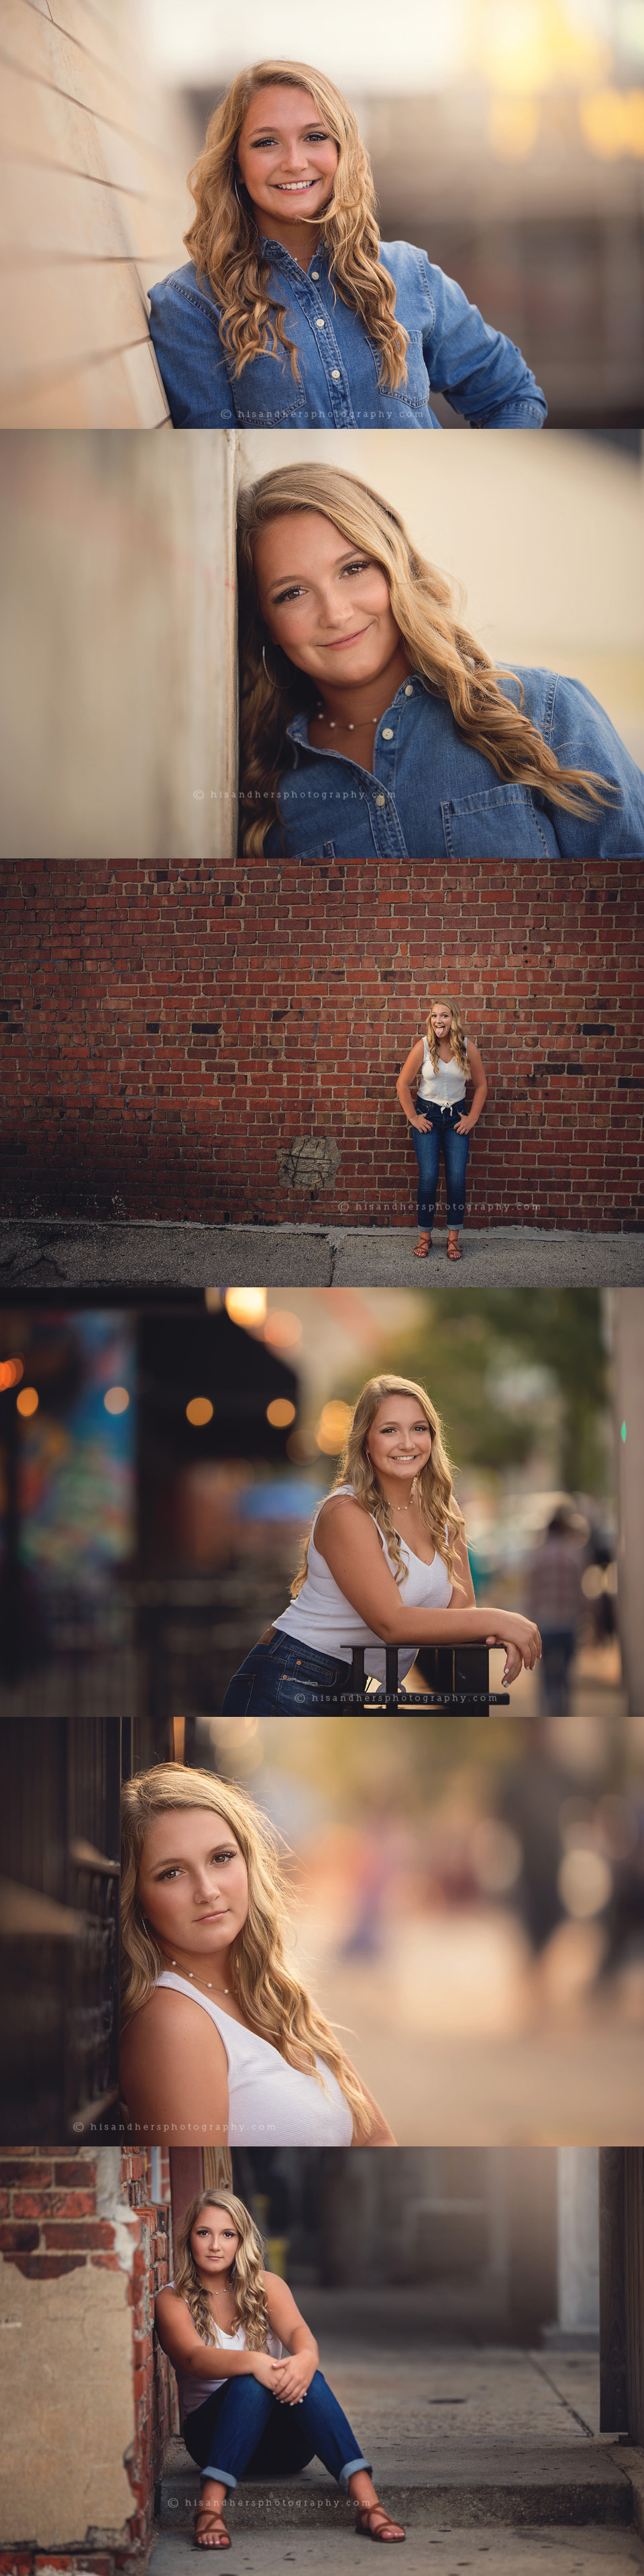 iowa high school senior pictures senior portraits photographer des moines high school seniors class of 2019 2020 2021